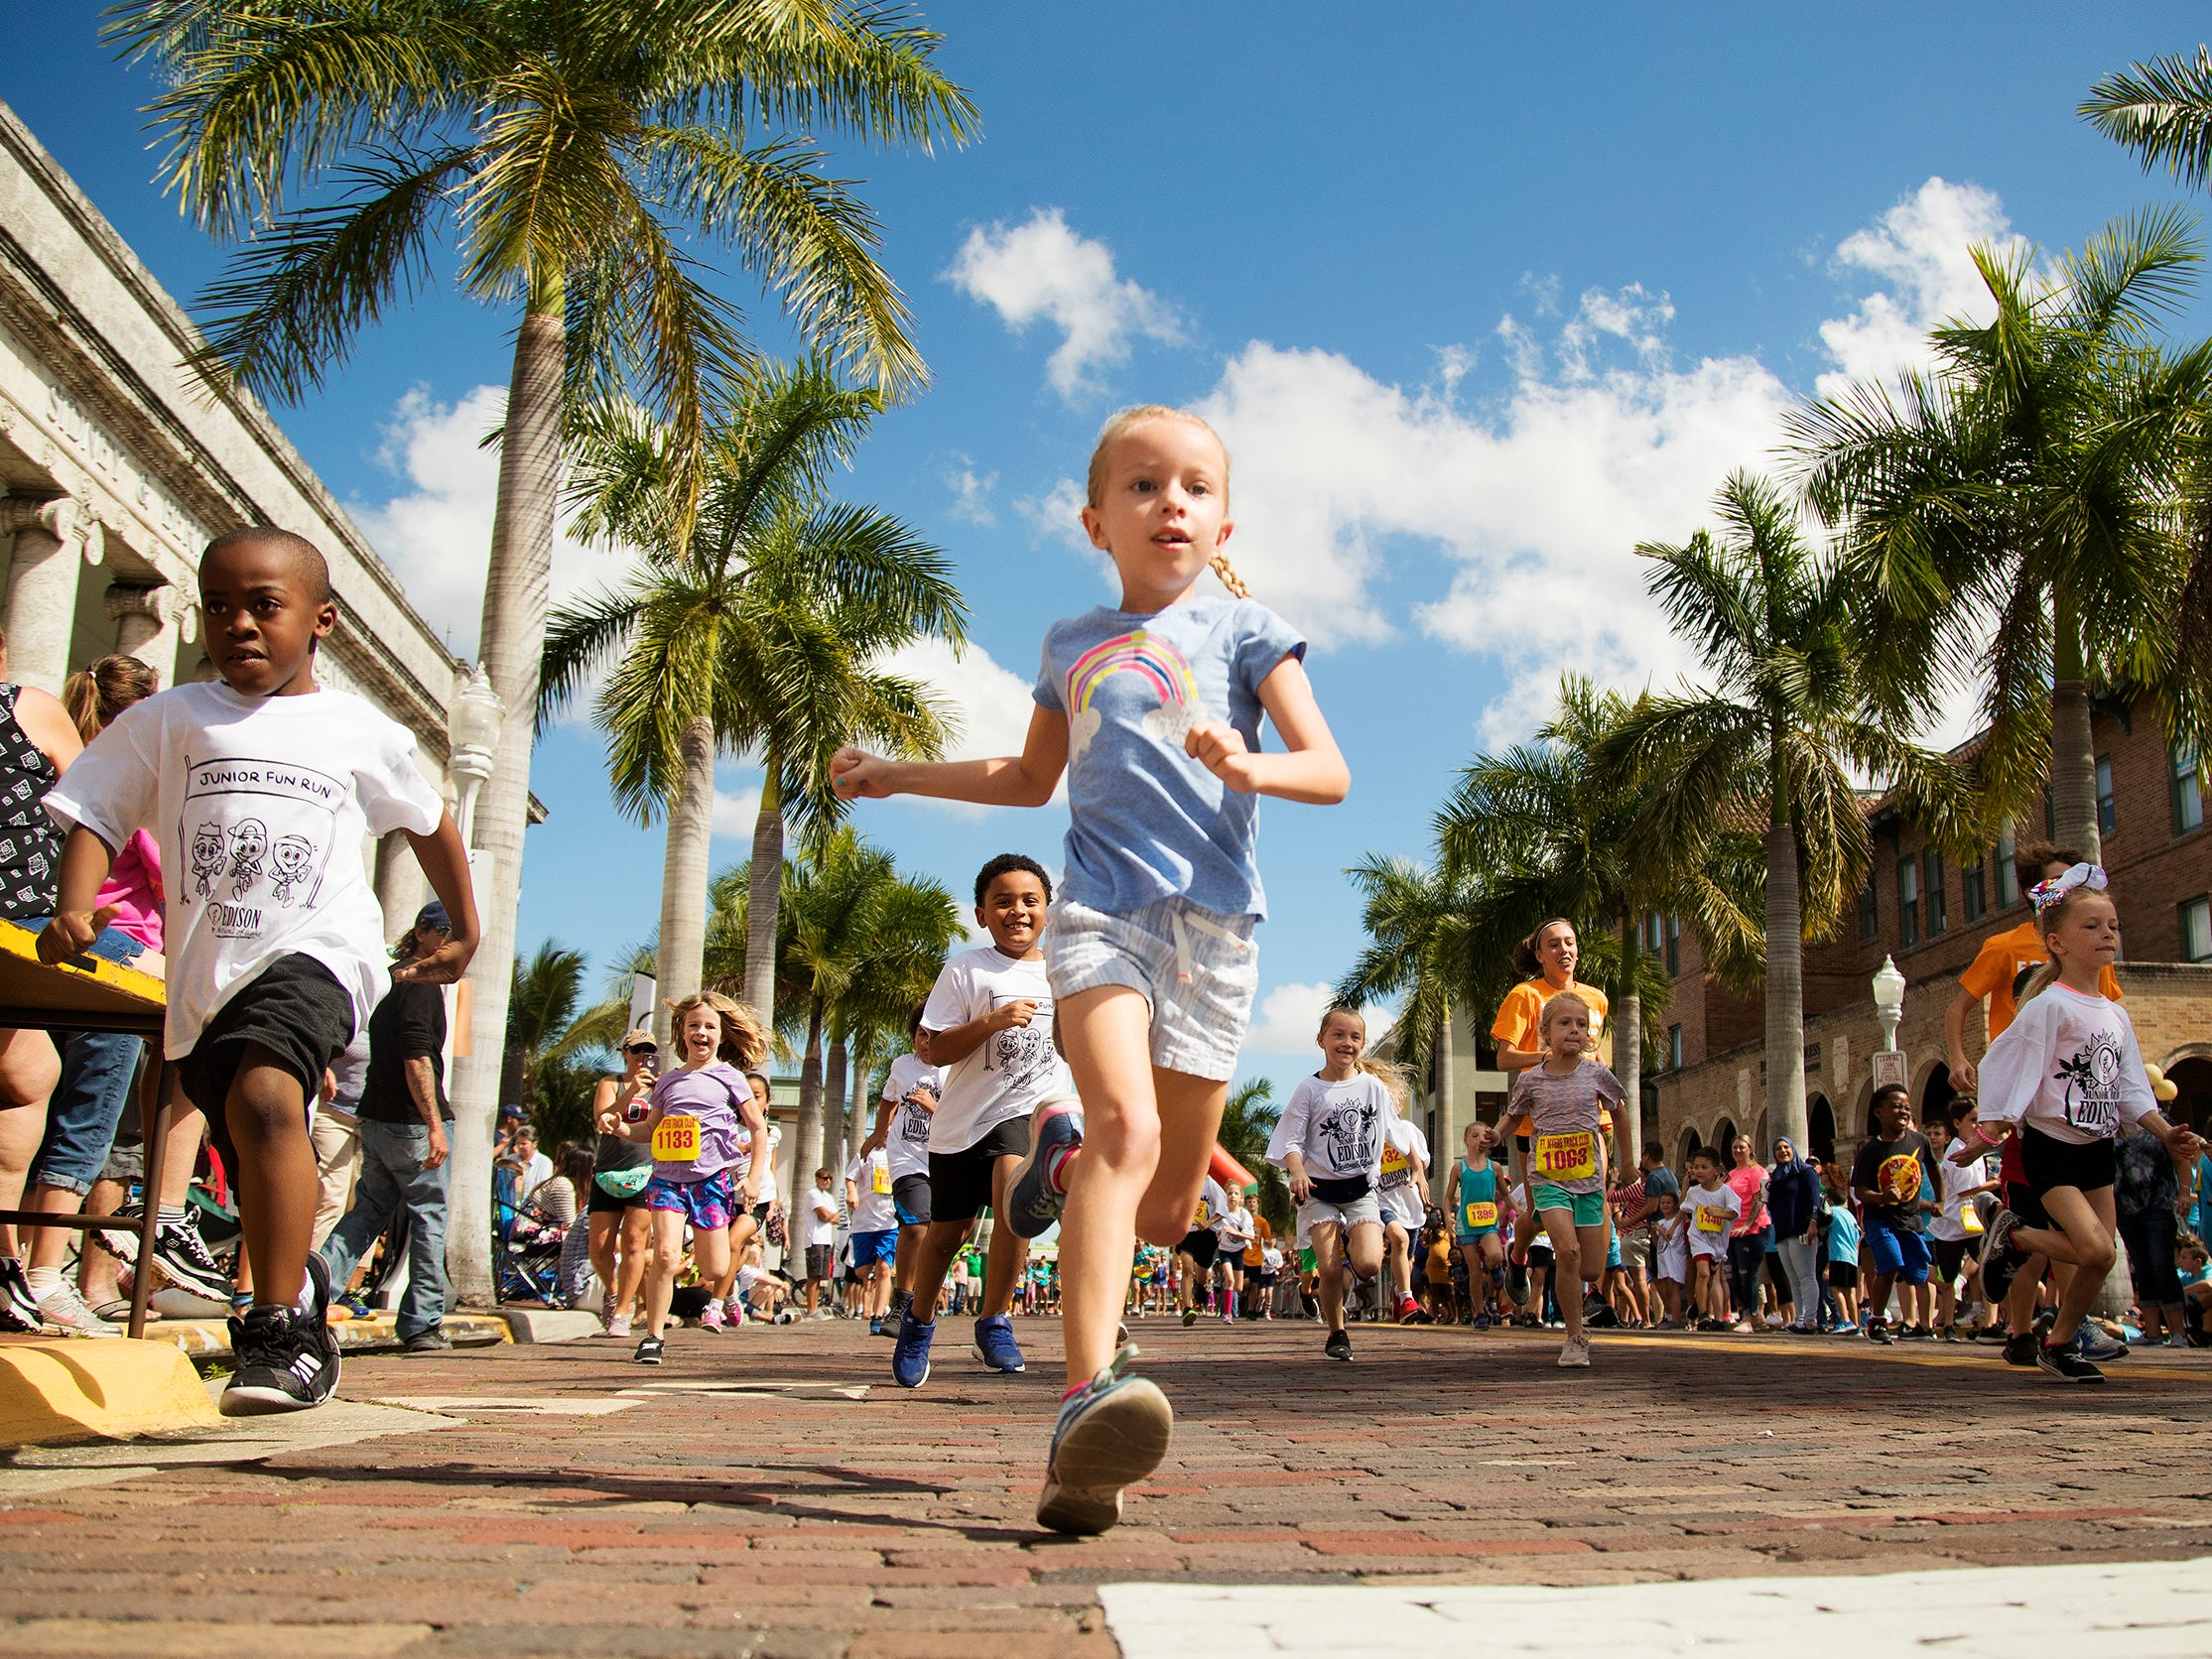 More than 300 kids raced in the Edison Festival of Light Junior Fun Run on Sunday in downtown Fort Myers.